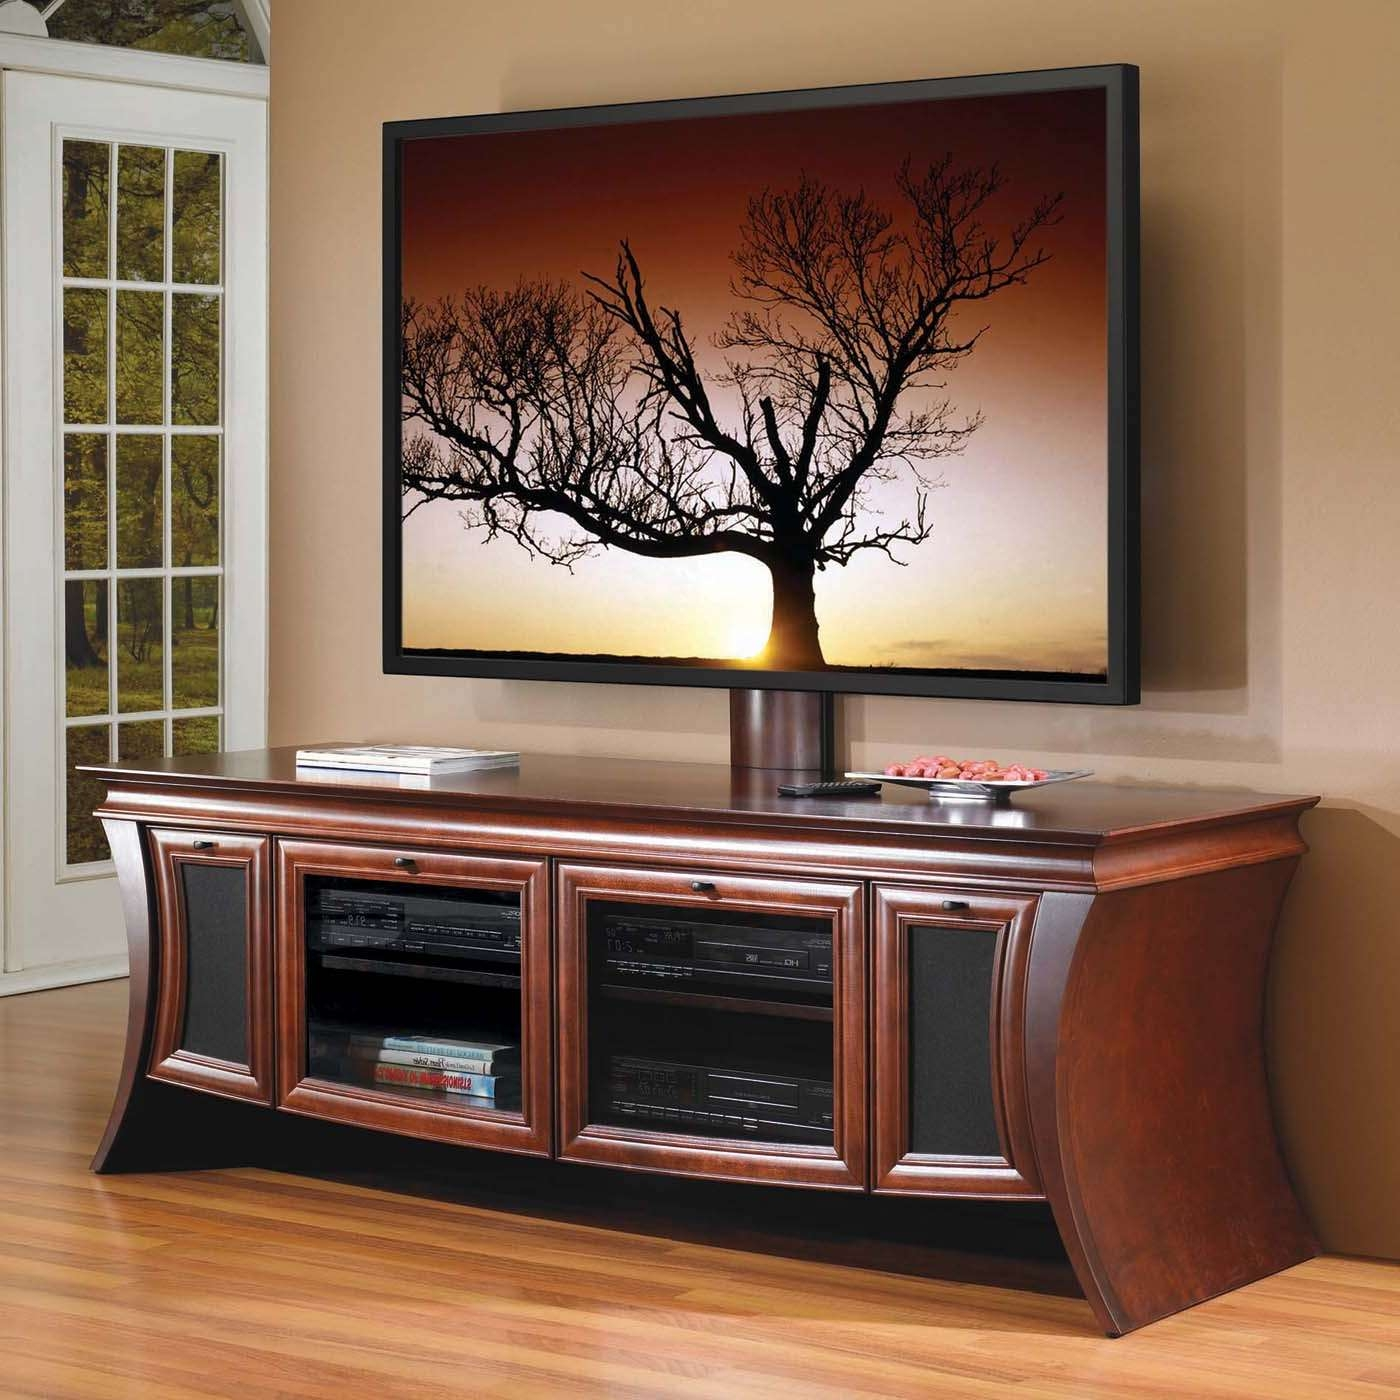 Furnitures Media Stands For Flat Screen Tvs Furniture The Best With Regard To Tv Stands For Large Tvs (View 2 of 15)